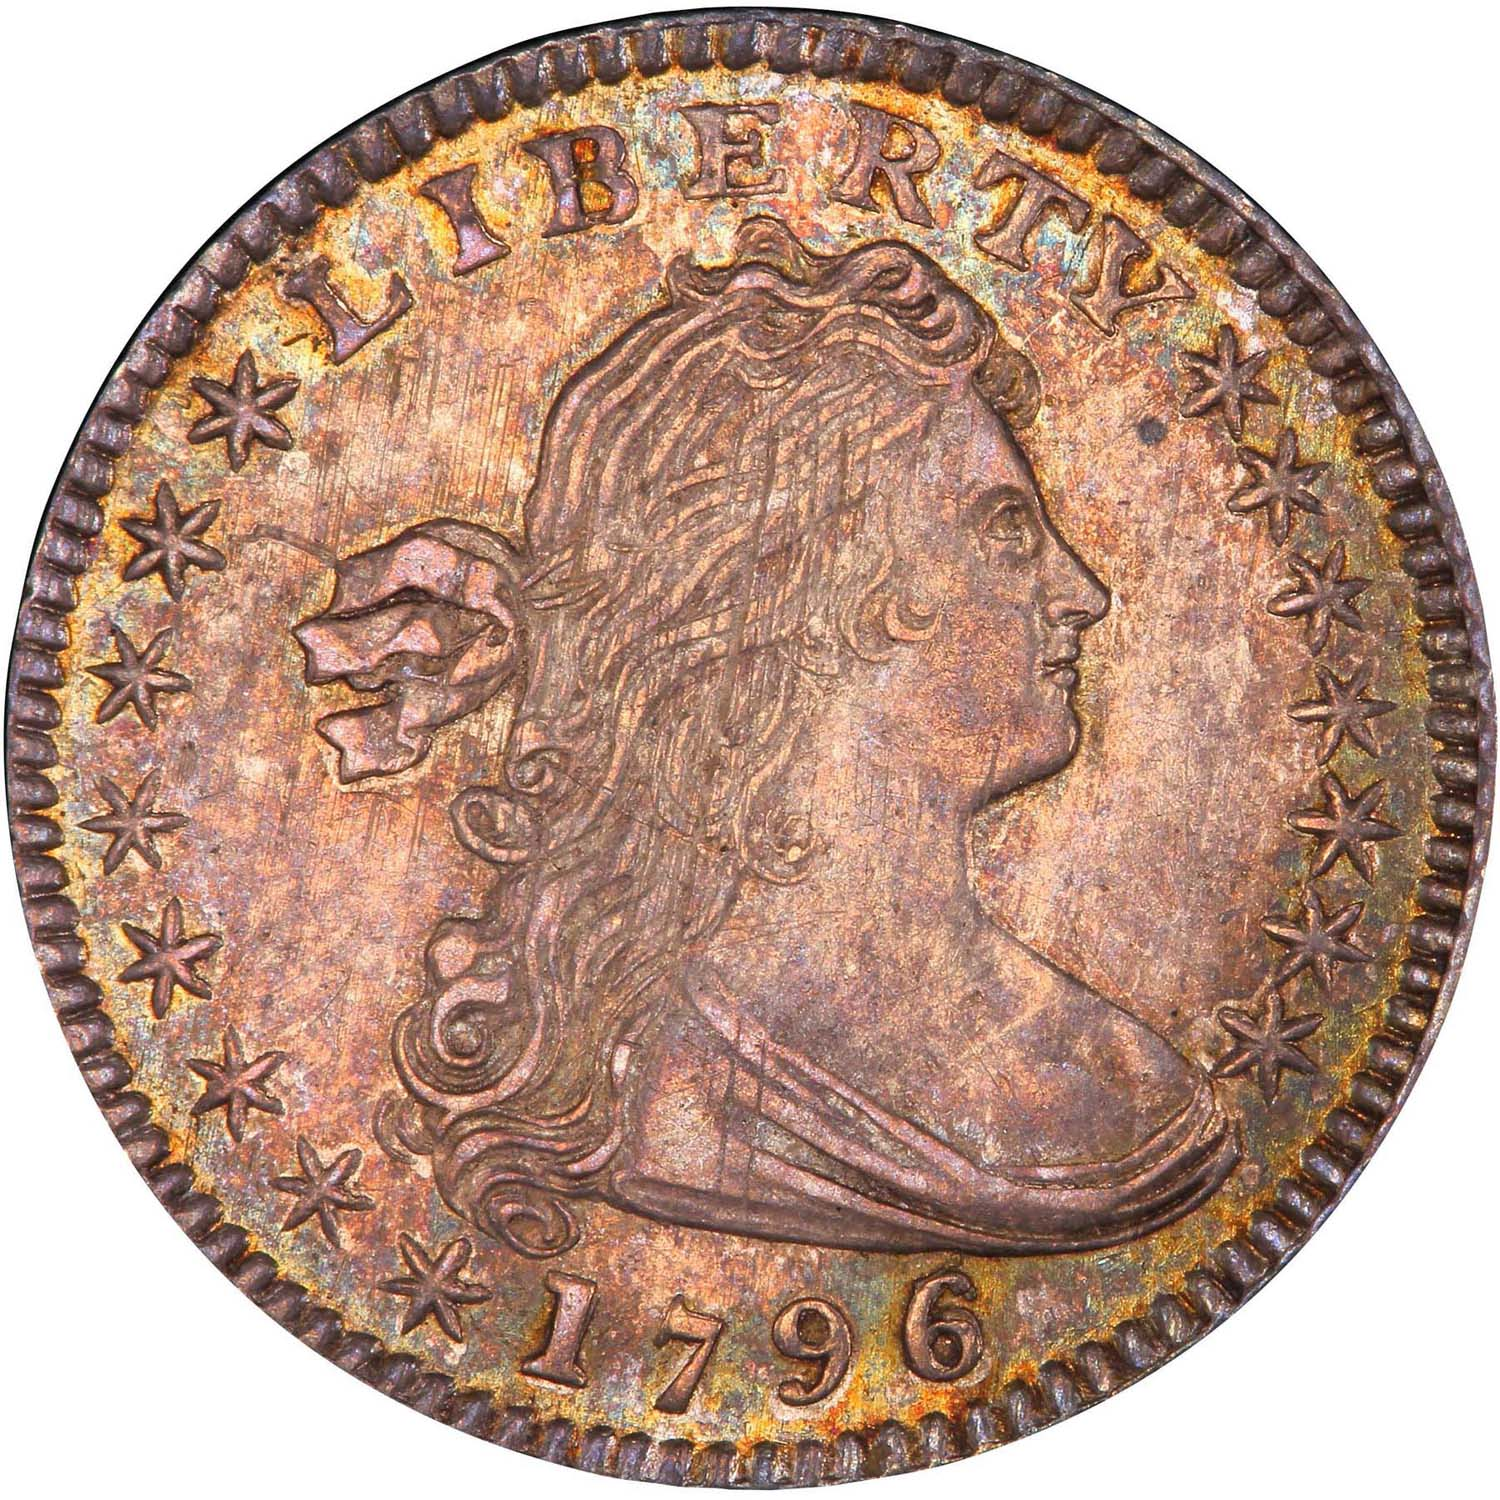 H10C 1796/5 PCGS MS64+ CAC, provenance from the Eliasberg collection, $92,000. Legend-Morphy image.